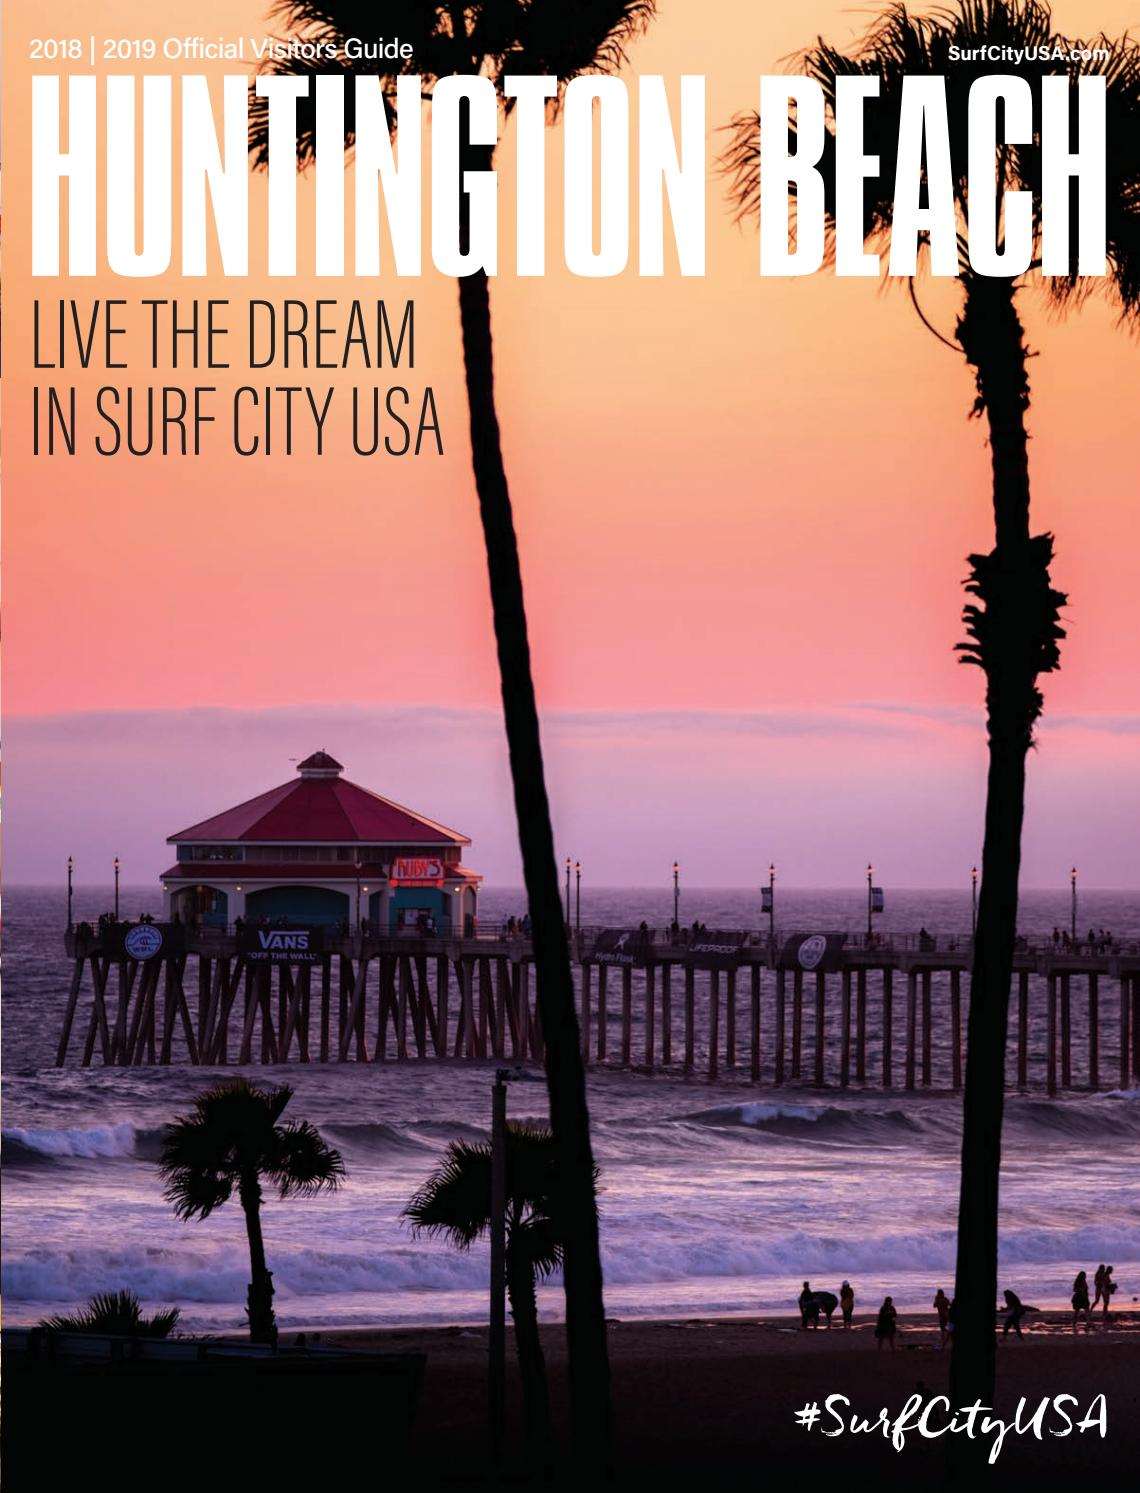 Cucina Alessa Huntington Beach Happy Hour Huntington Beach Visitors Guide 2018 2019 By Orange Coast